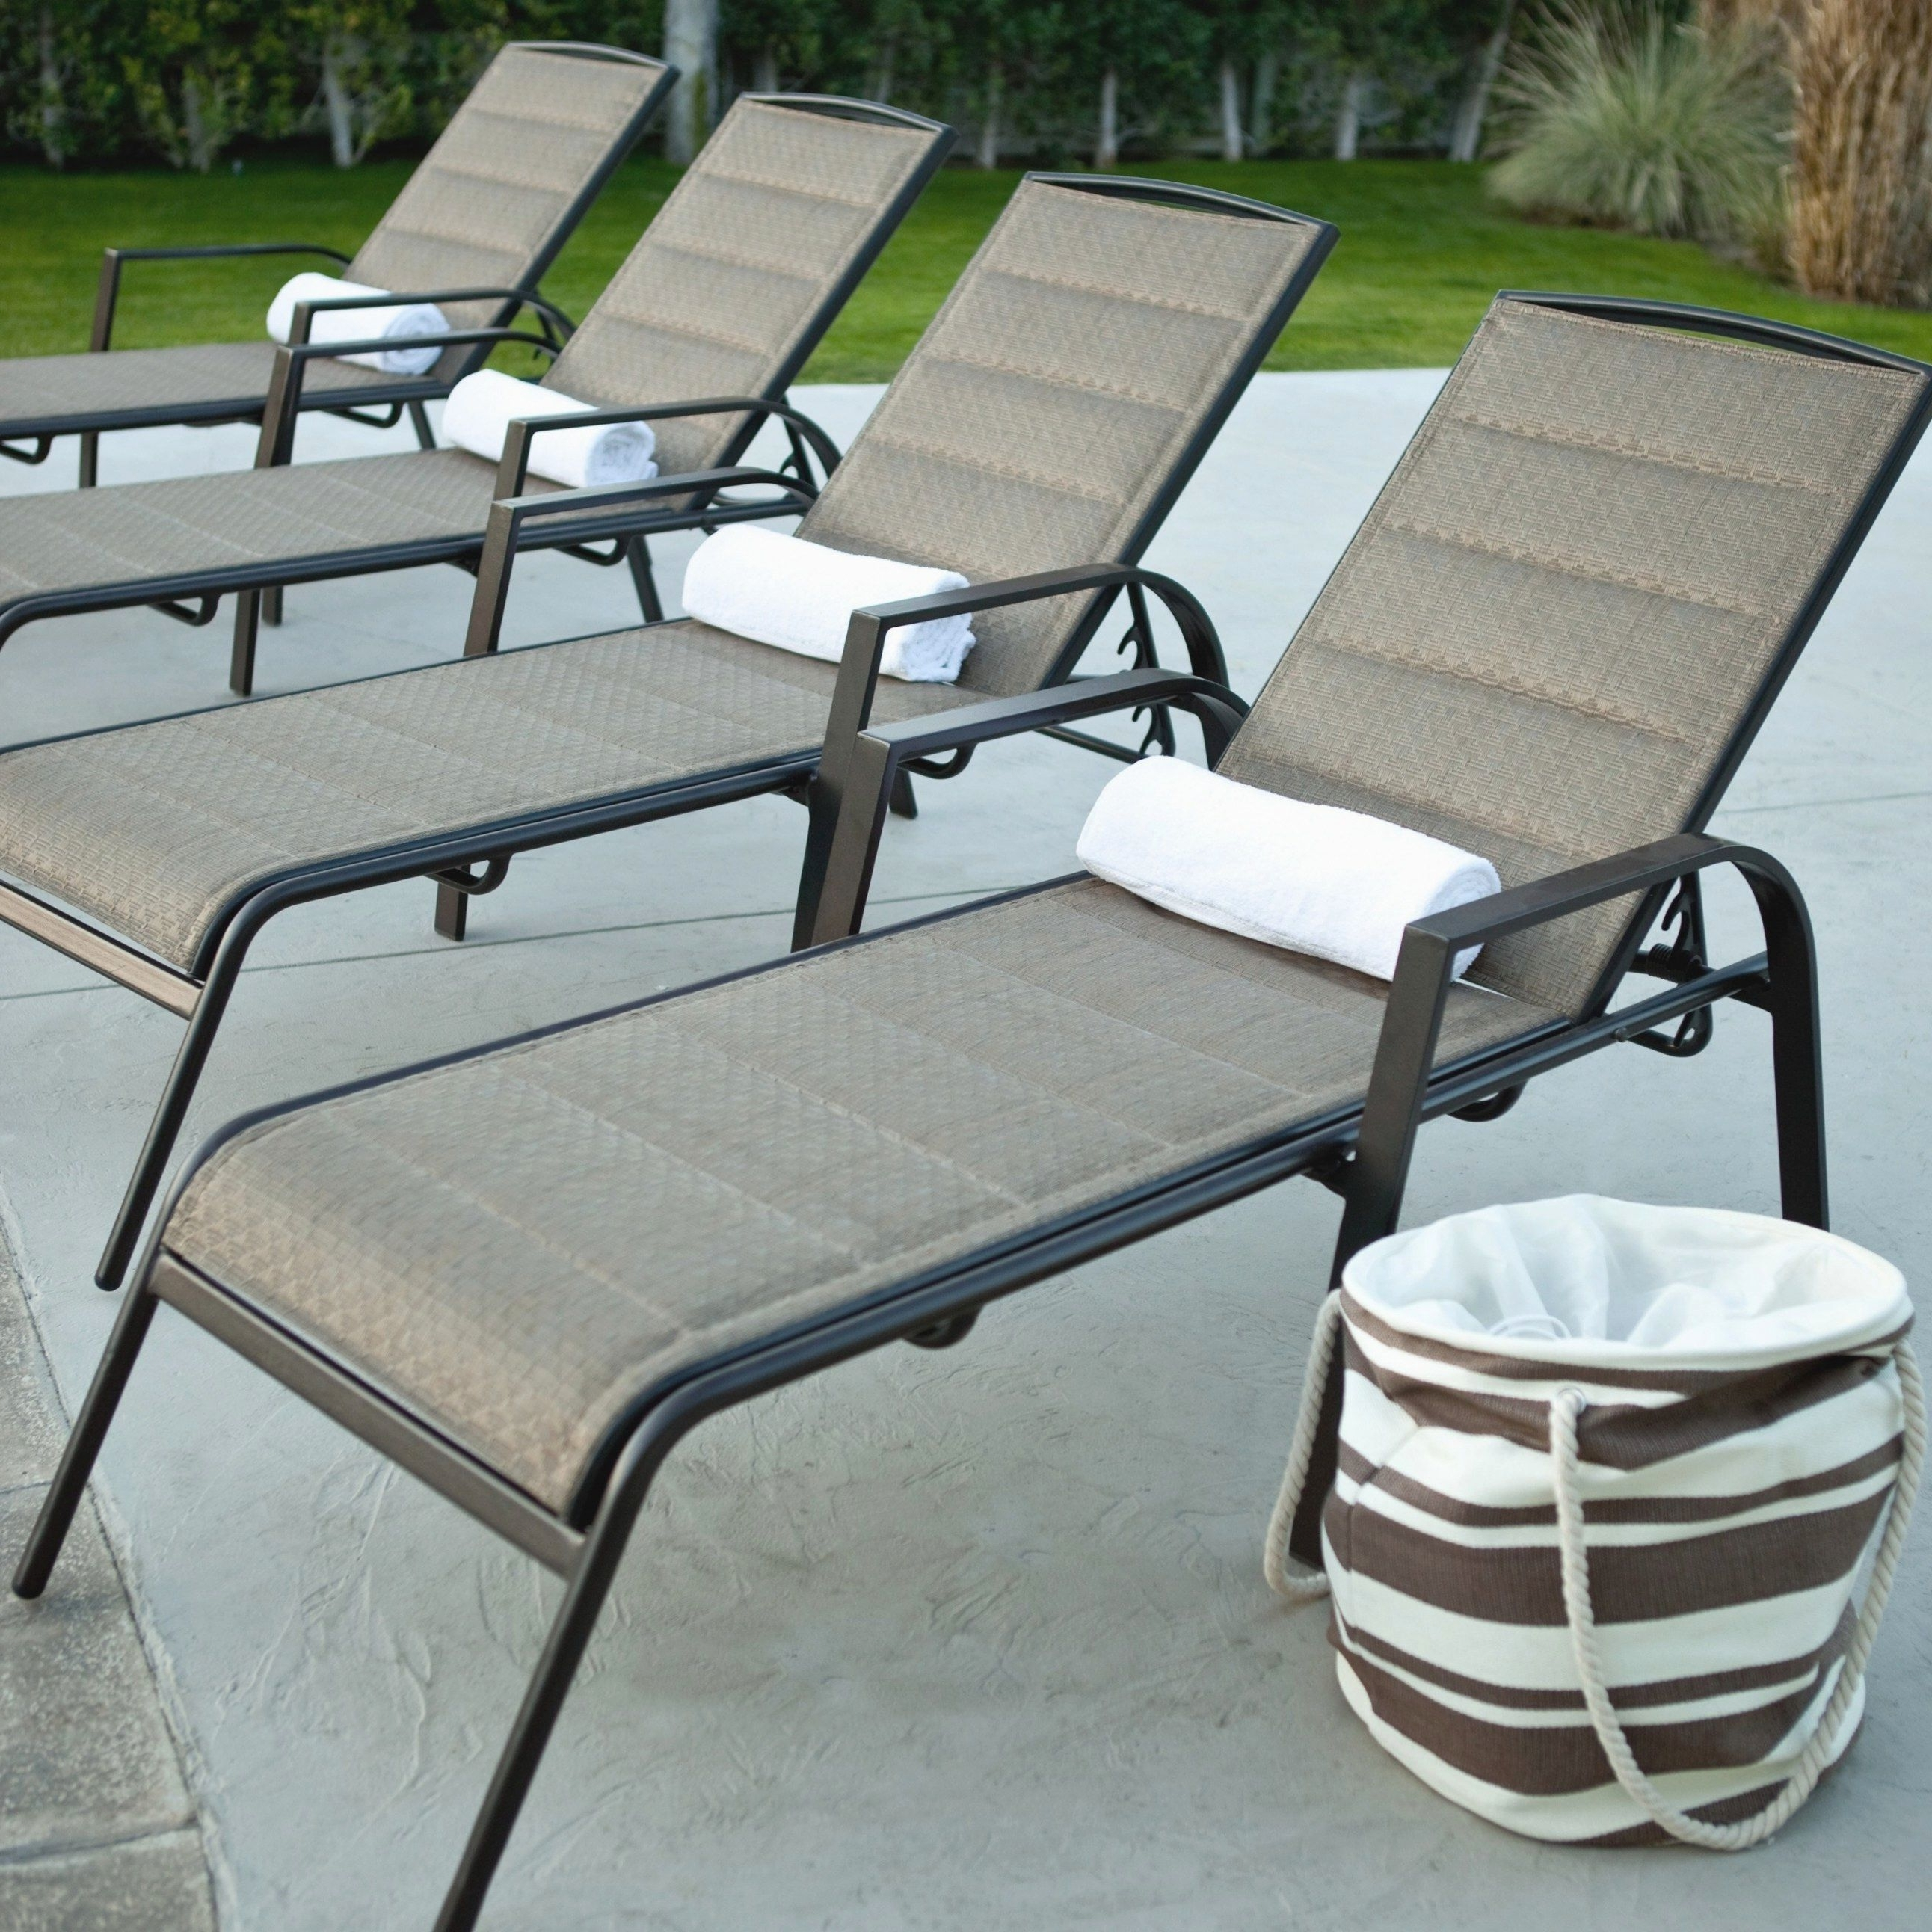 Outdoor Chaise Lounge Chairs Under 100 Modern Fresh Ideas Inside Current Outdoor Chaise Lounge Chairs Under $ (View 10 of 15)